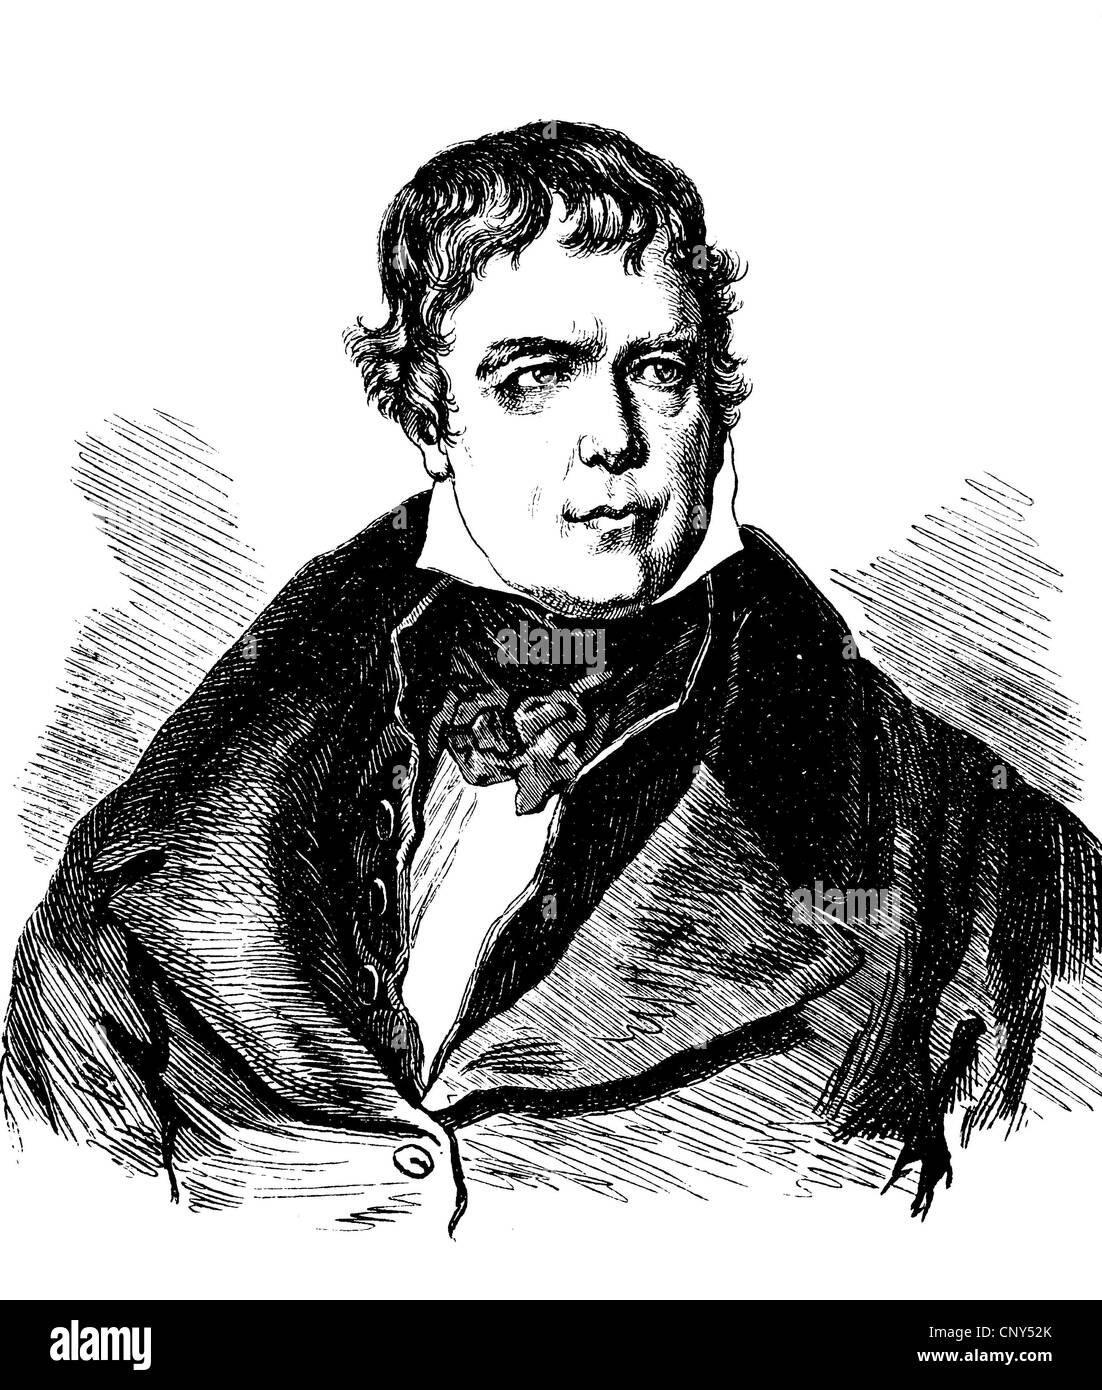 Sir Walter Scott, 1st Baronet of Abbotsford, 1771 - 1832, a Scottish poet and writer, historic wood engraving, about - Stock Image